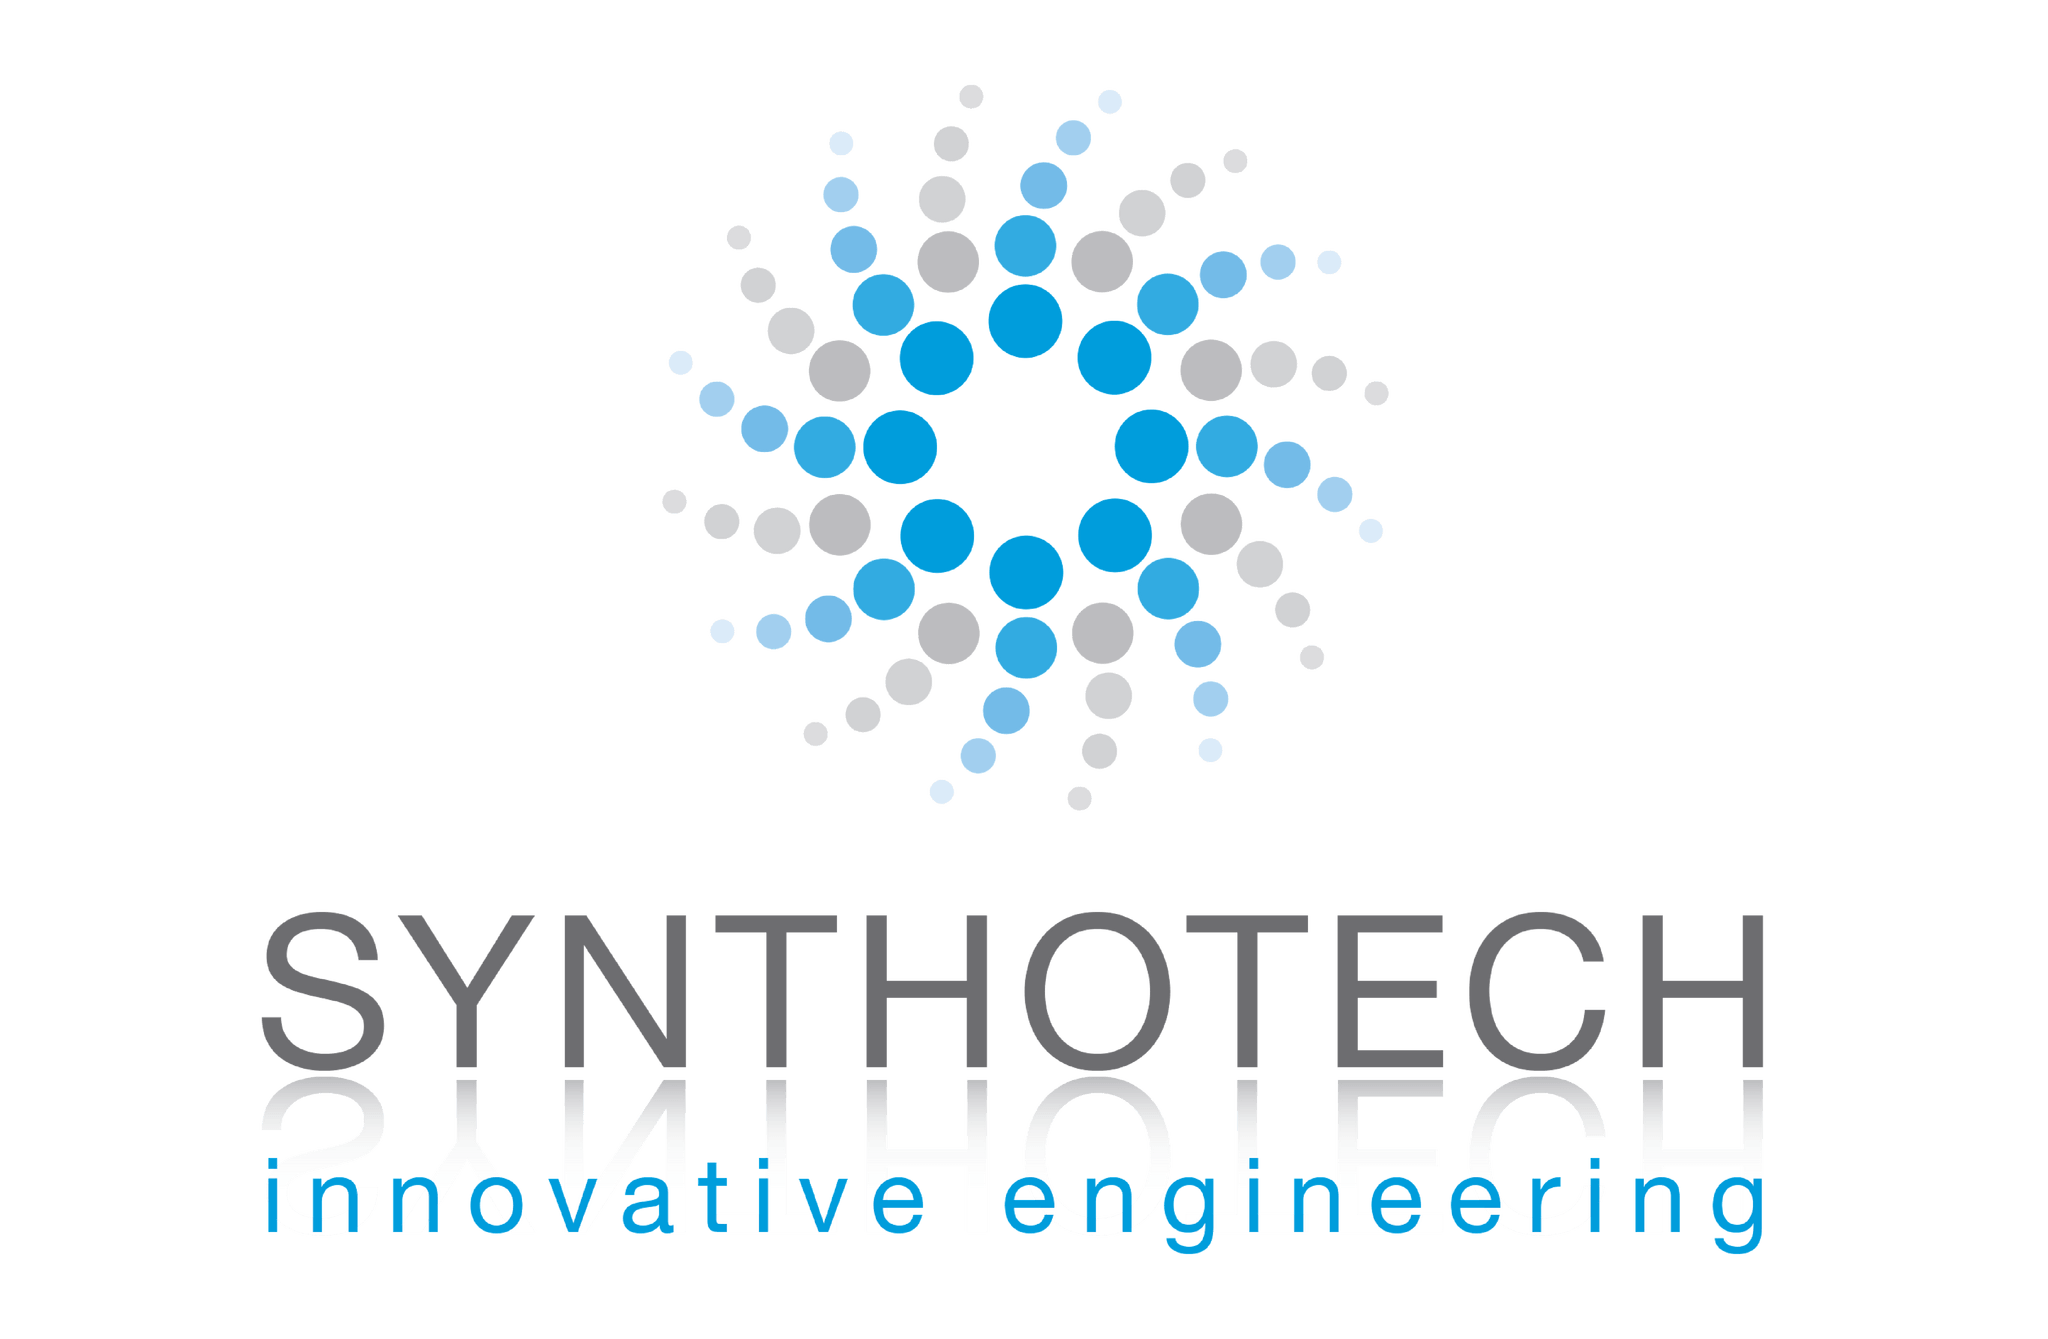 Synthotech Limited